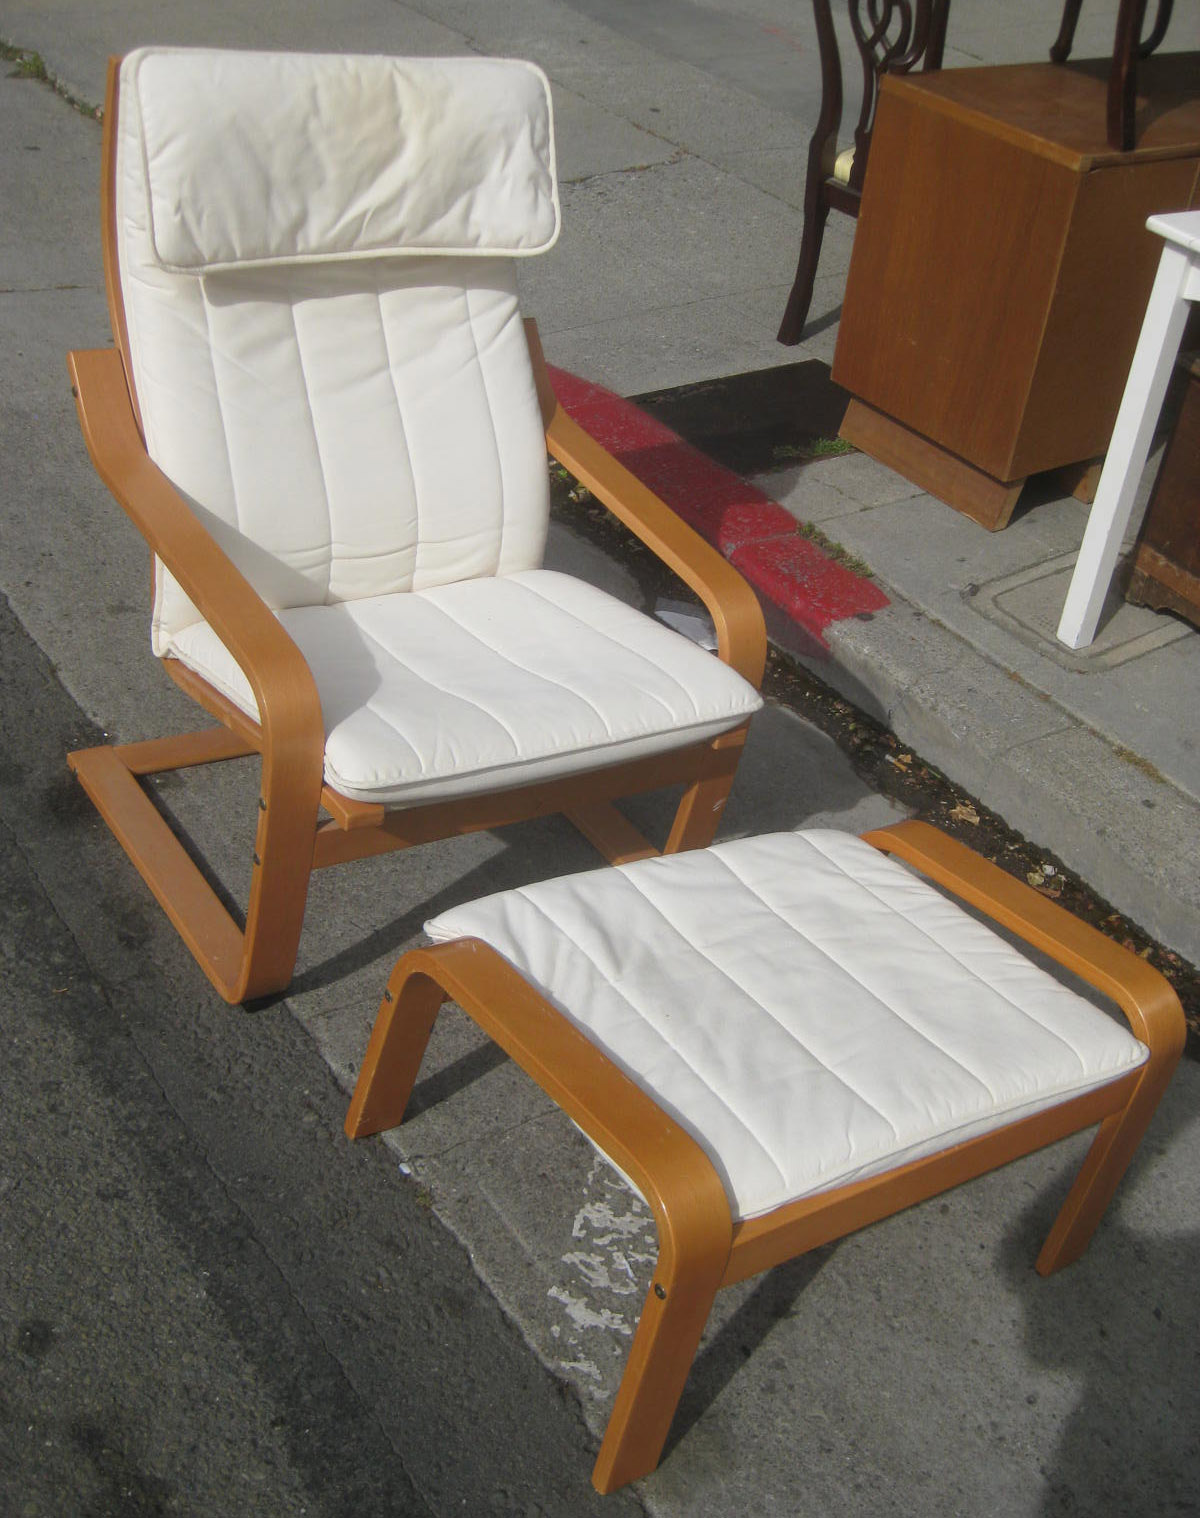 Ikea Recliner Chairs Sale Swivel Chair Base Replacement Parts Uk Uhuru Furniture And Collectibles Sold Poang